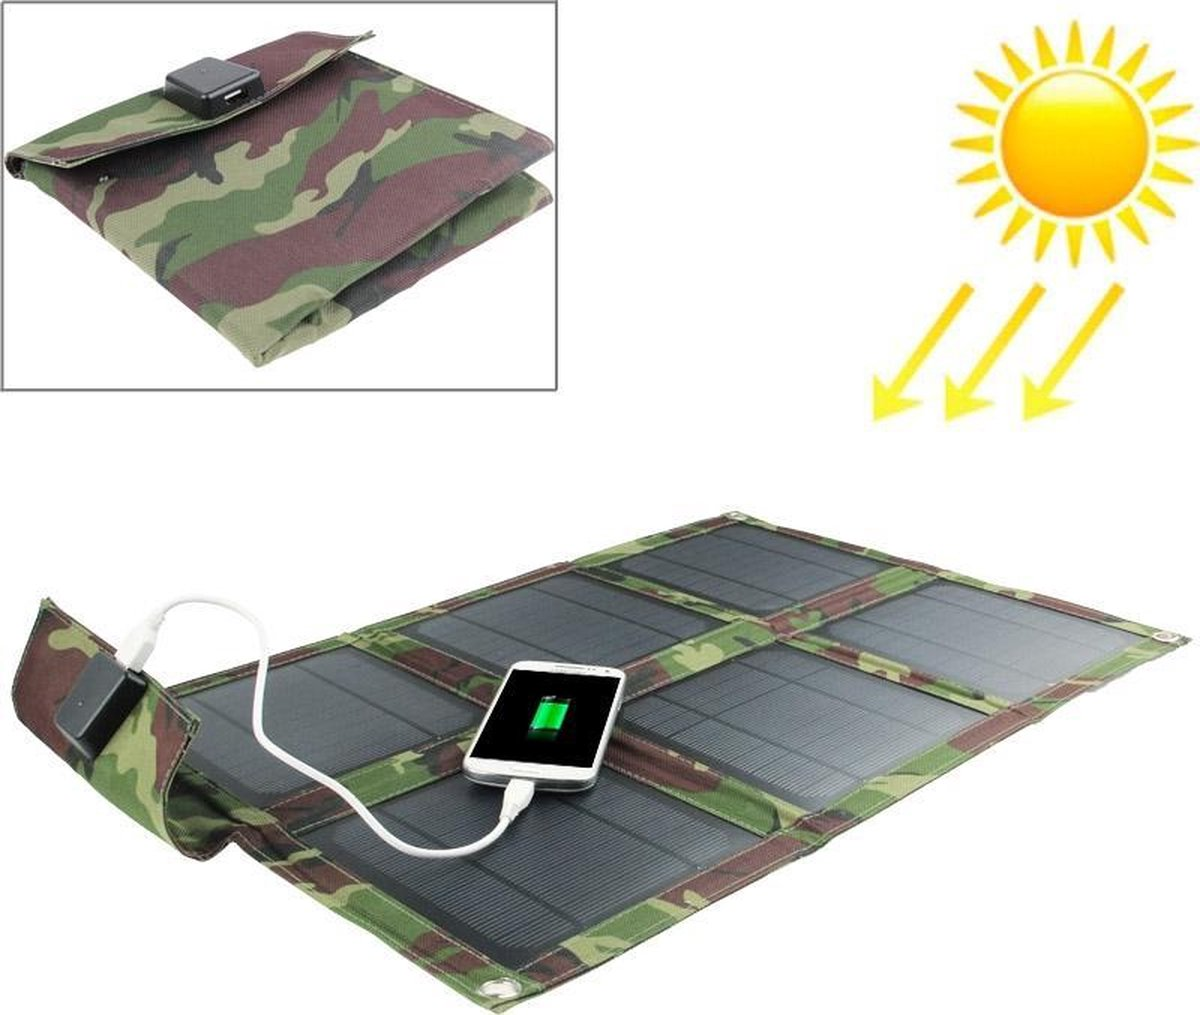 15 W Portable Folding Solar Panel / Solar Charger Bag voor laptops / mobiele telefoons